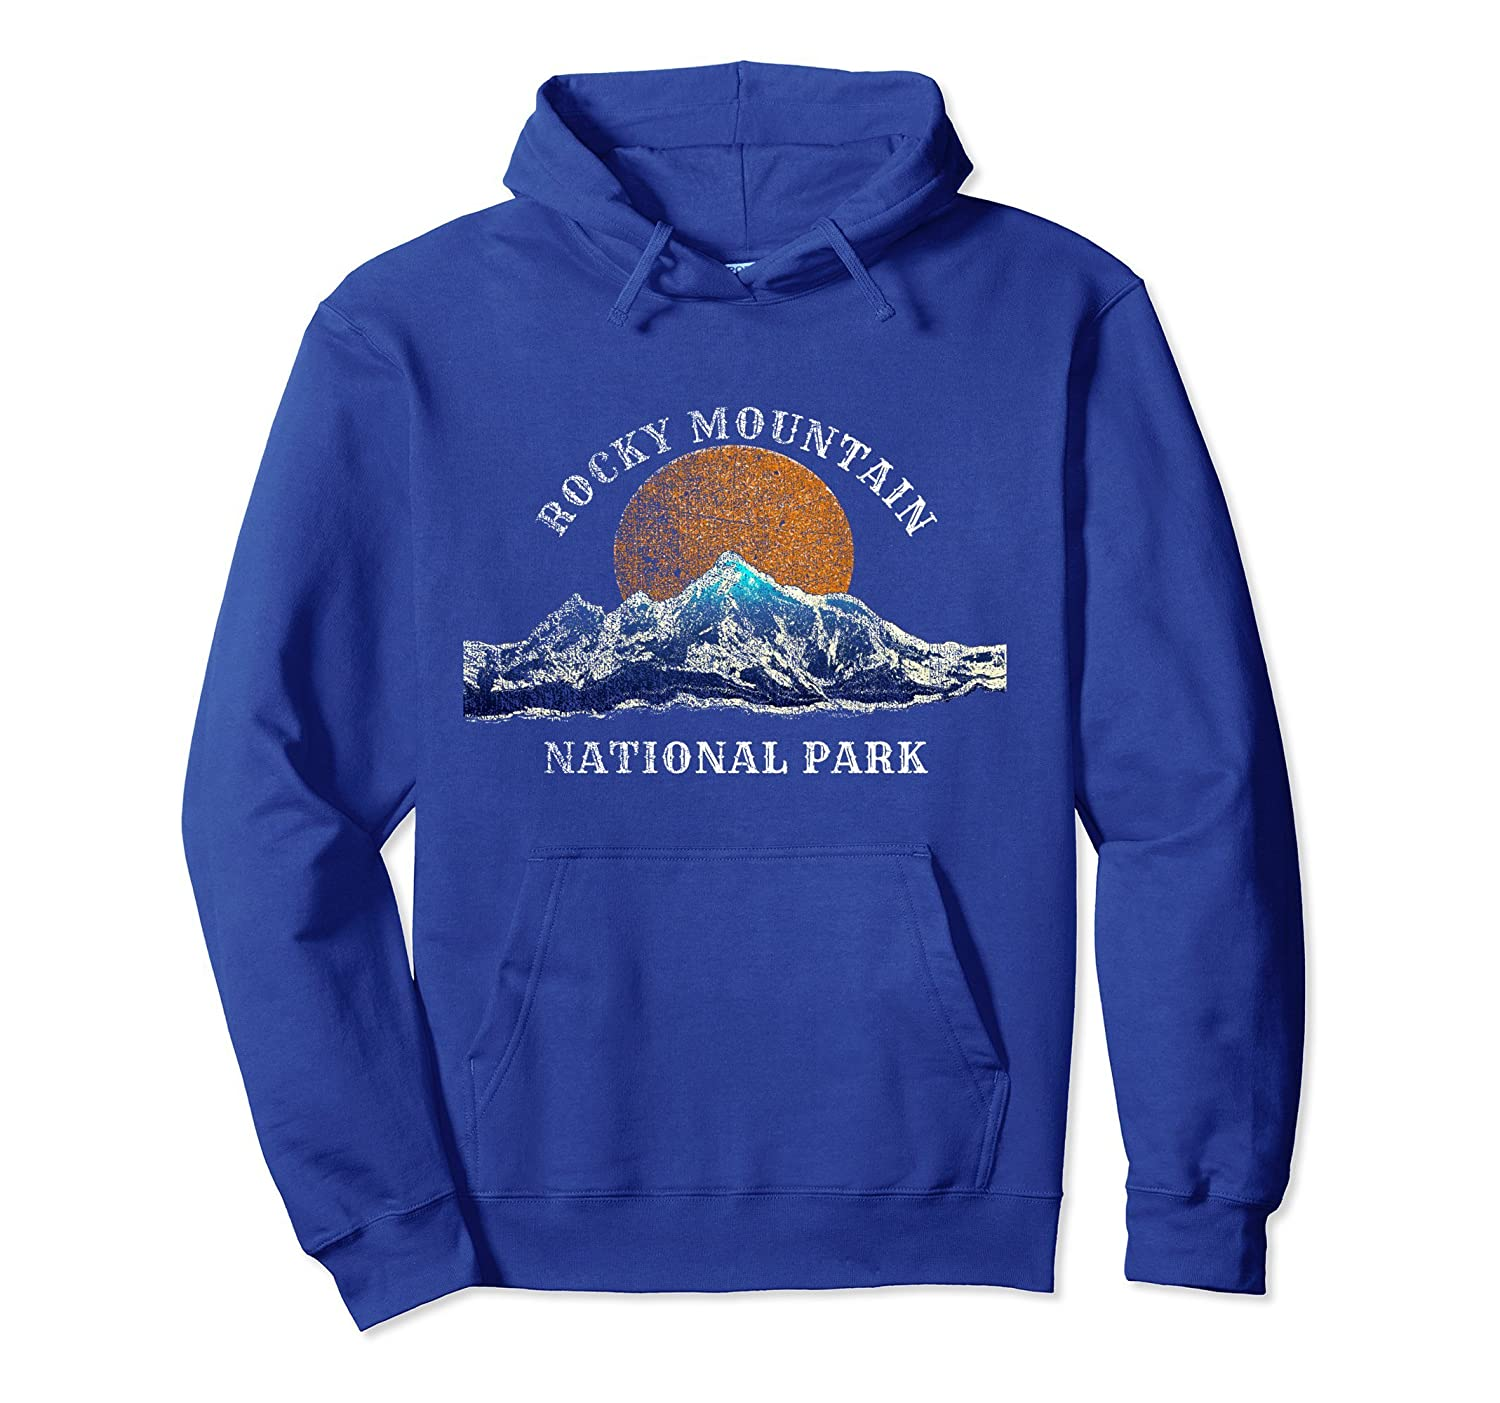 Rocky Mountain National Park Hoodie with Mountain Scenery-fa